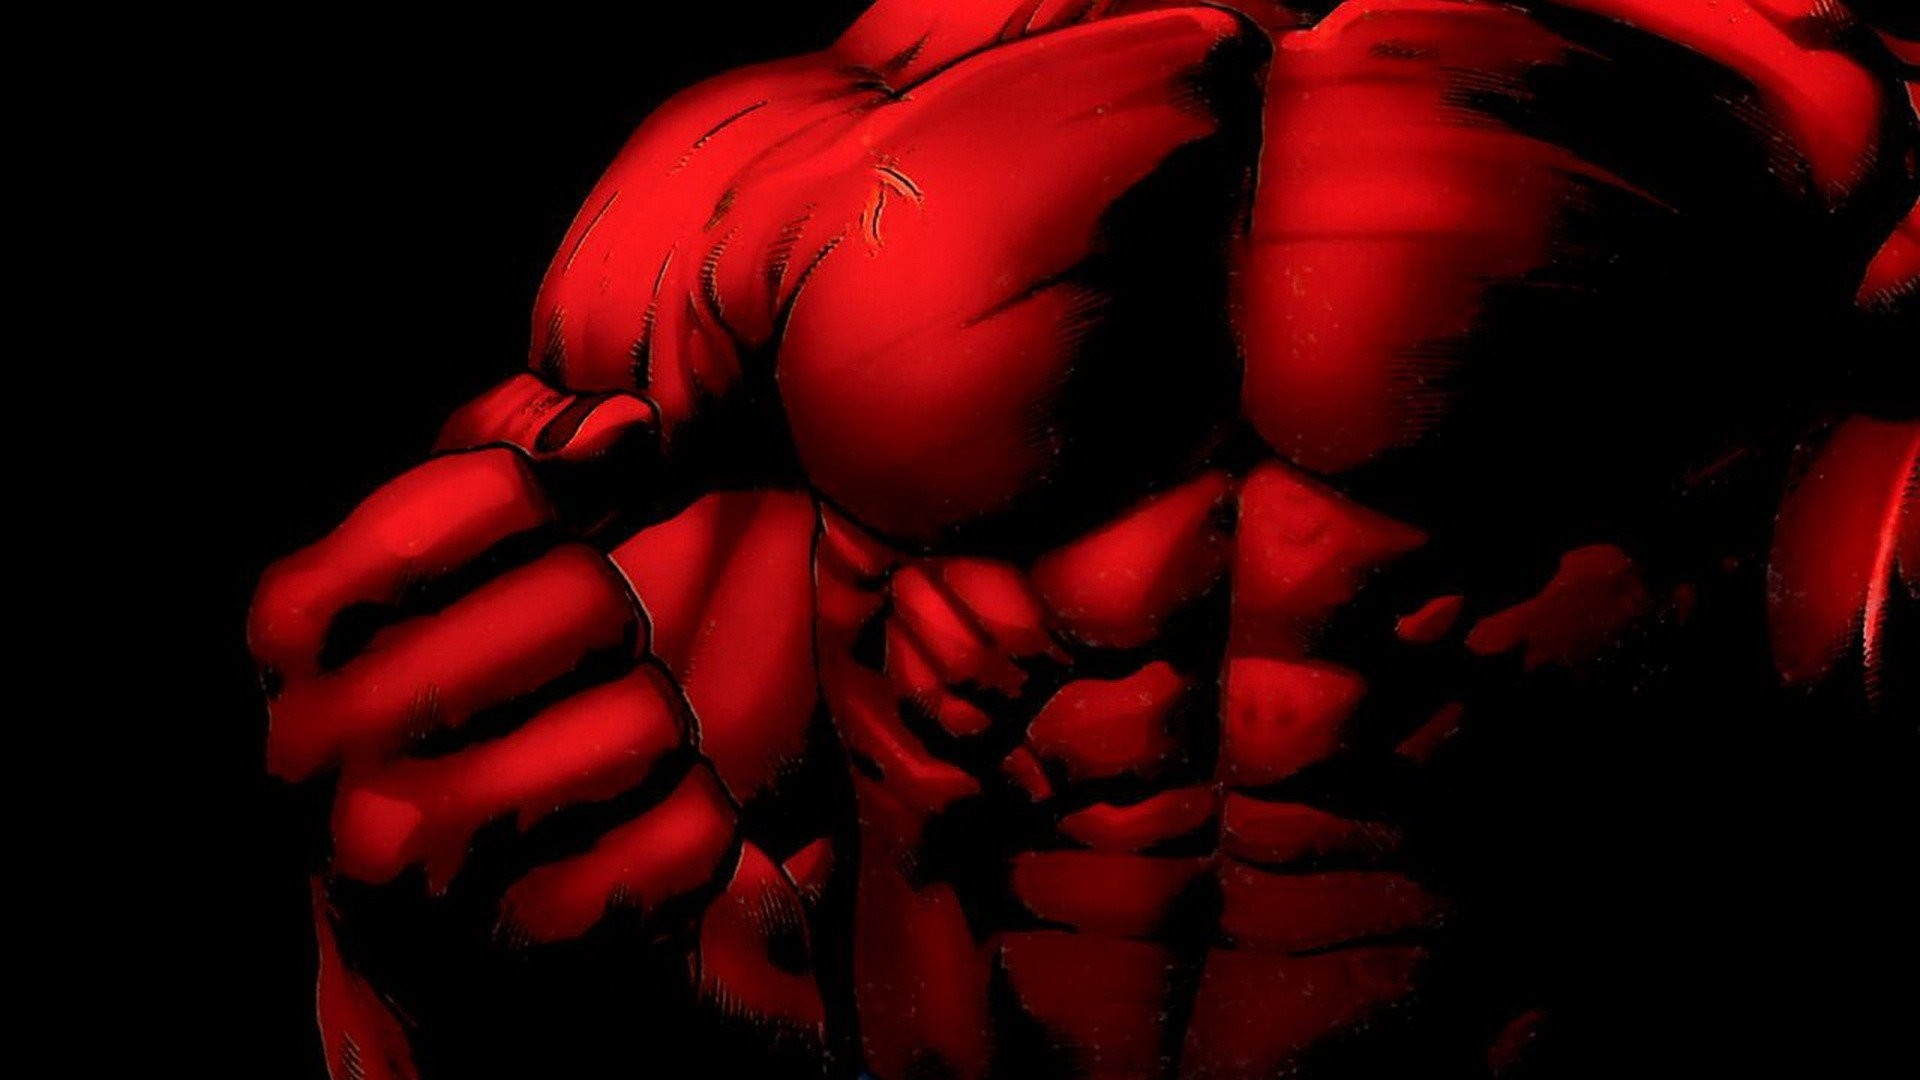 Res: 1920x1080, Red Hulk Wallpapers 17 - 1920 X 1080